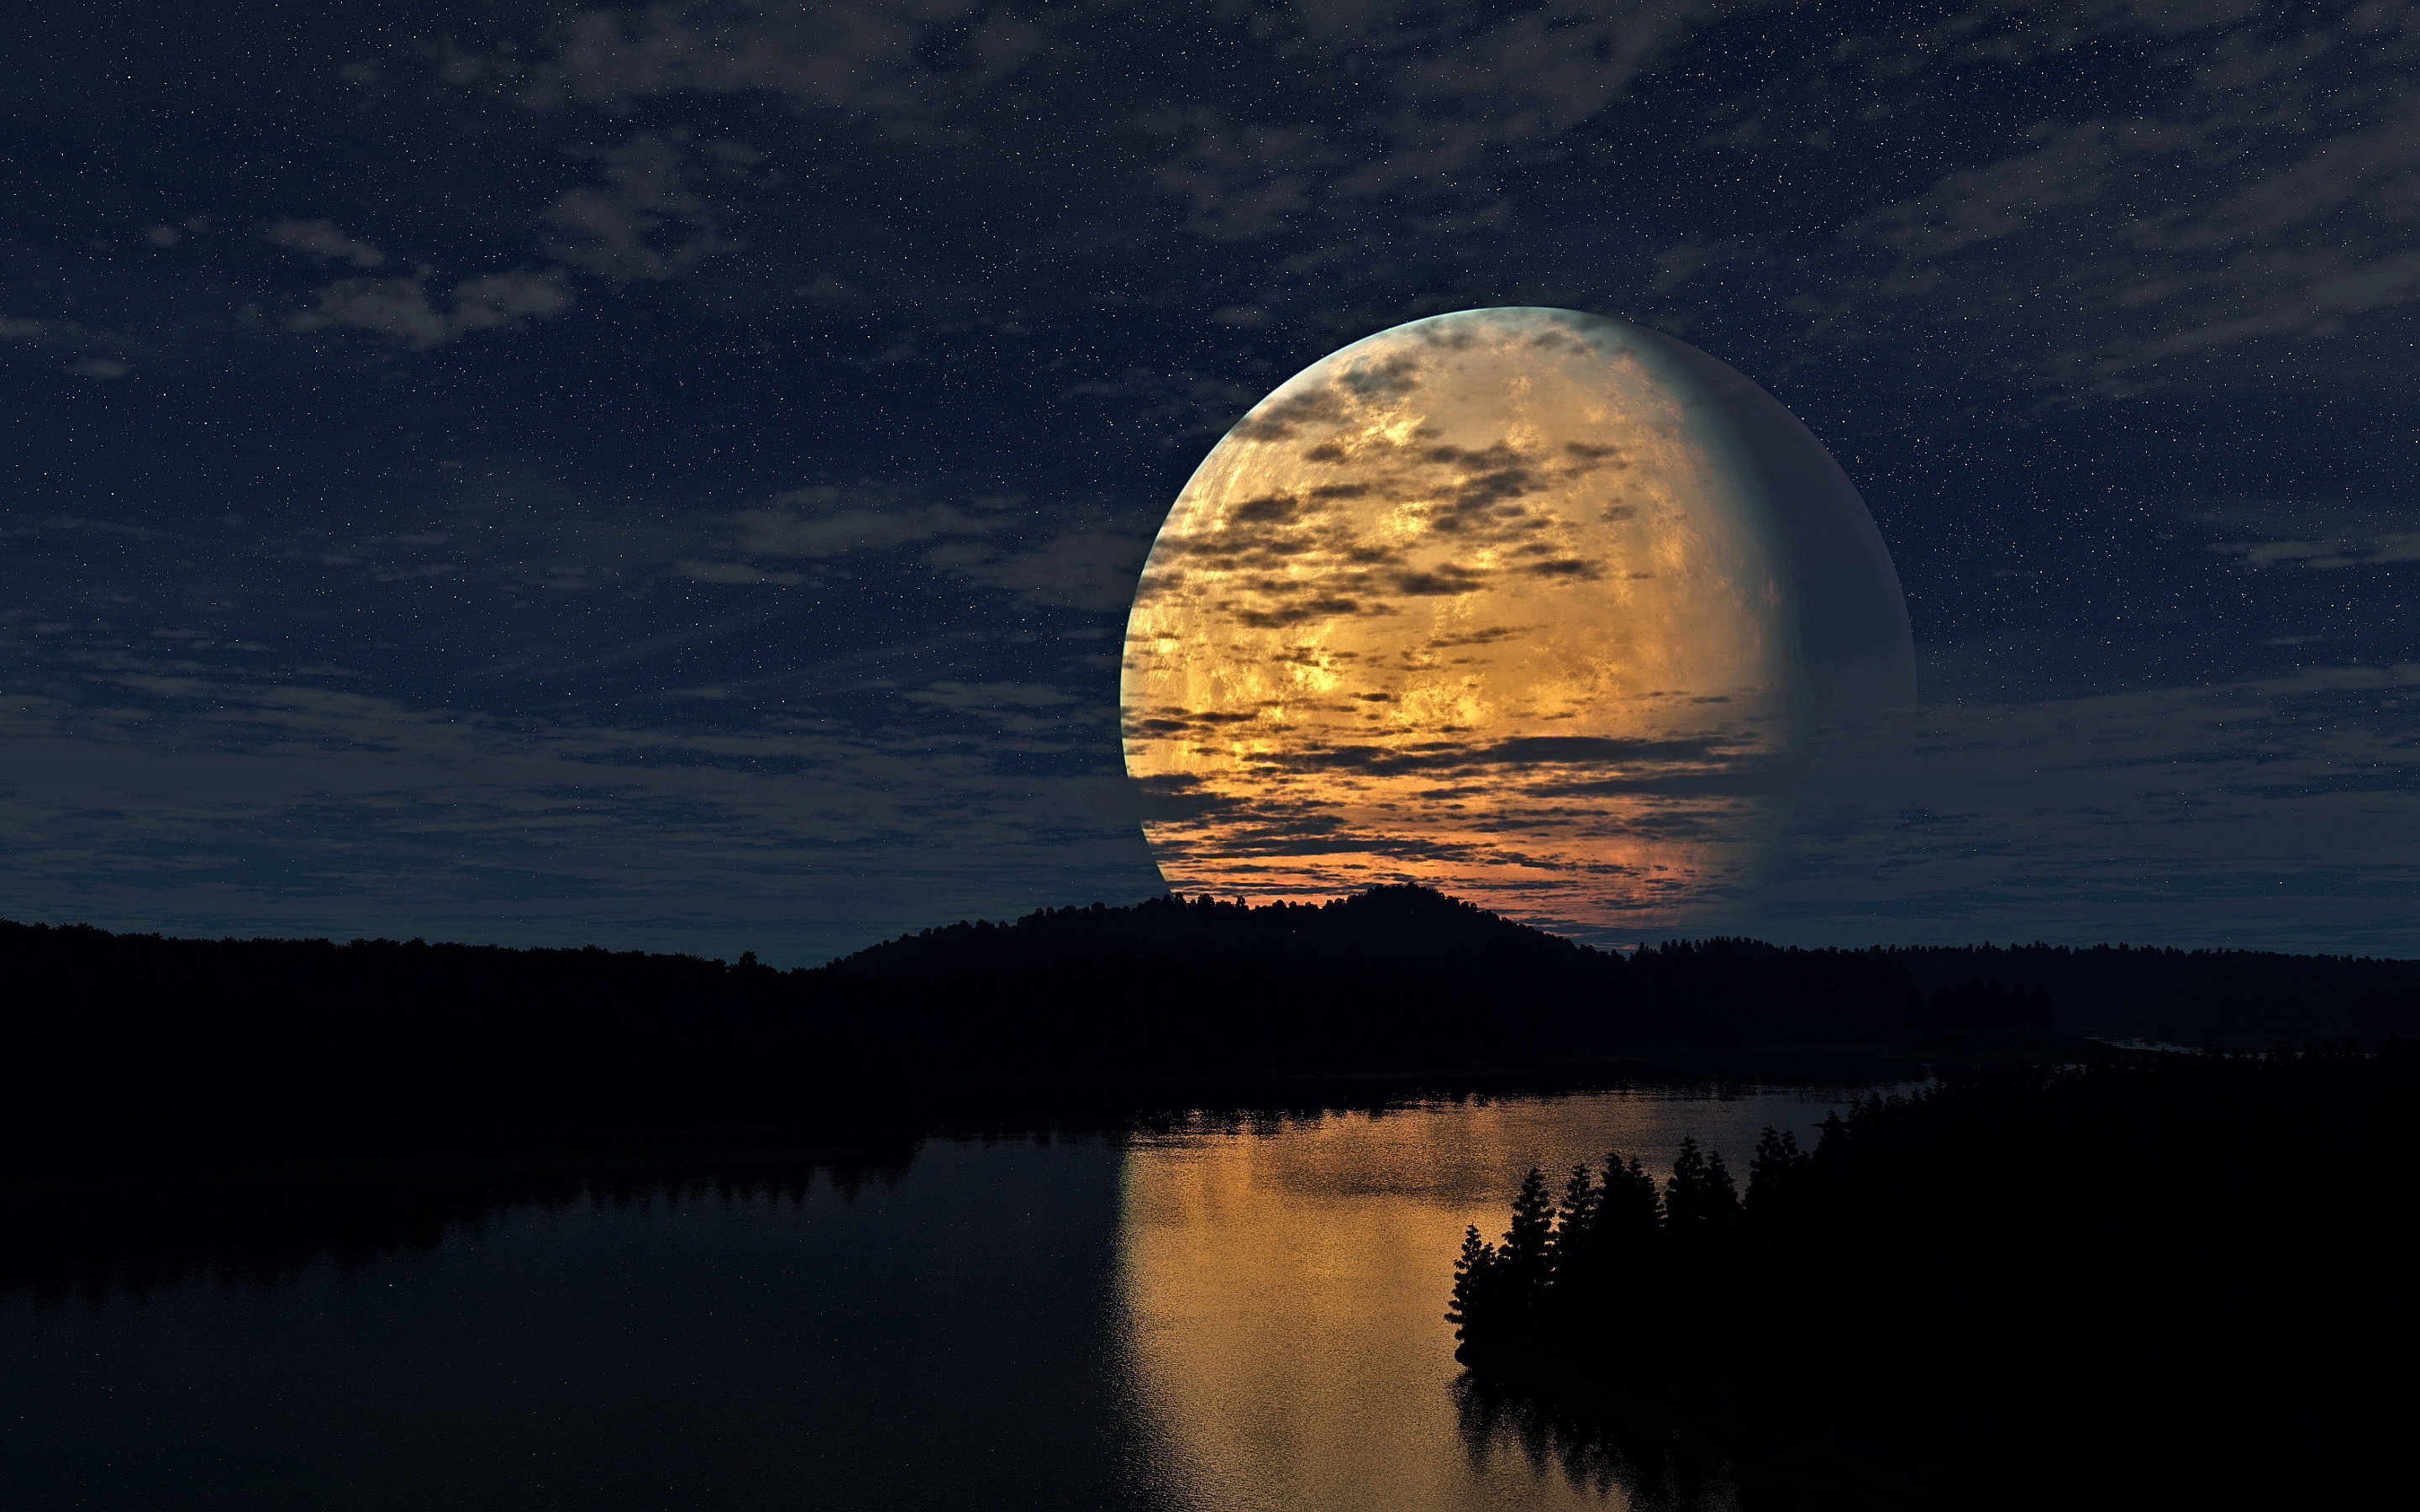 Night moon river scenery Wallpapers Pictures Photos Images. «